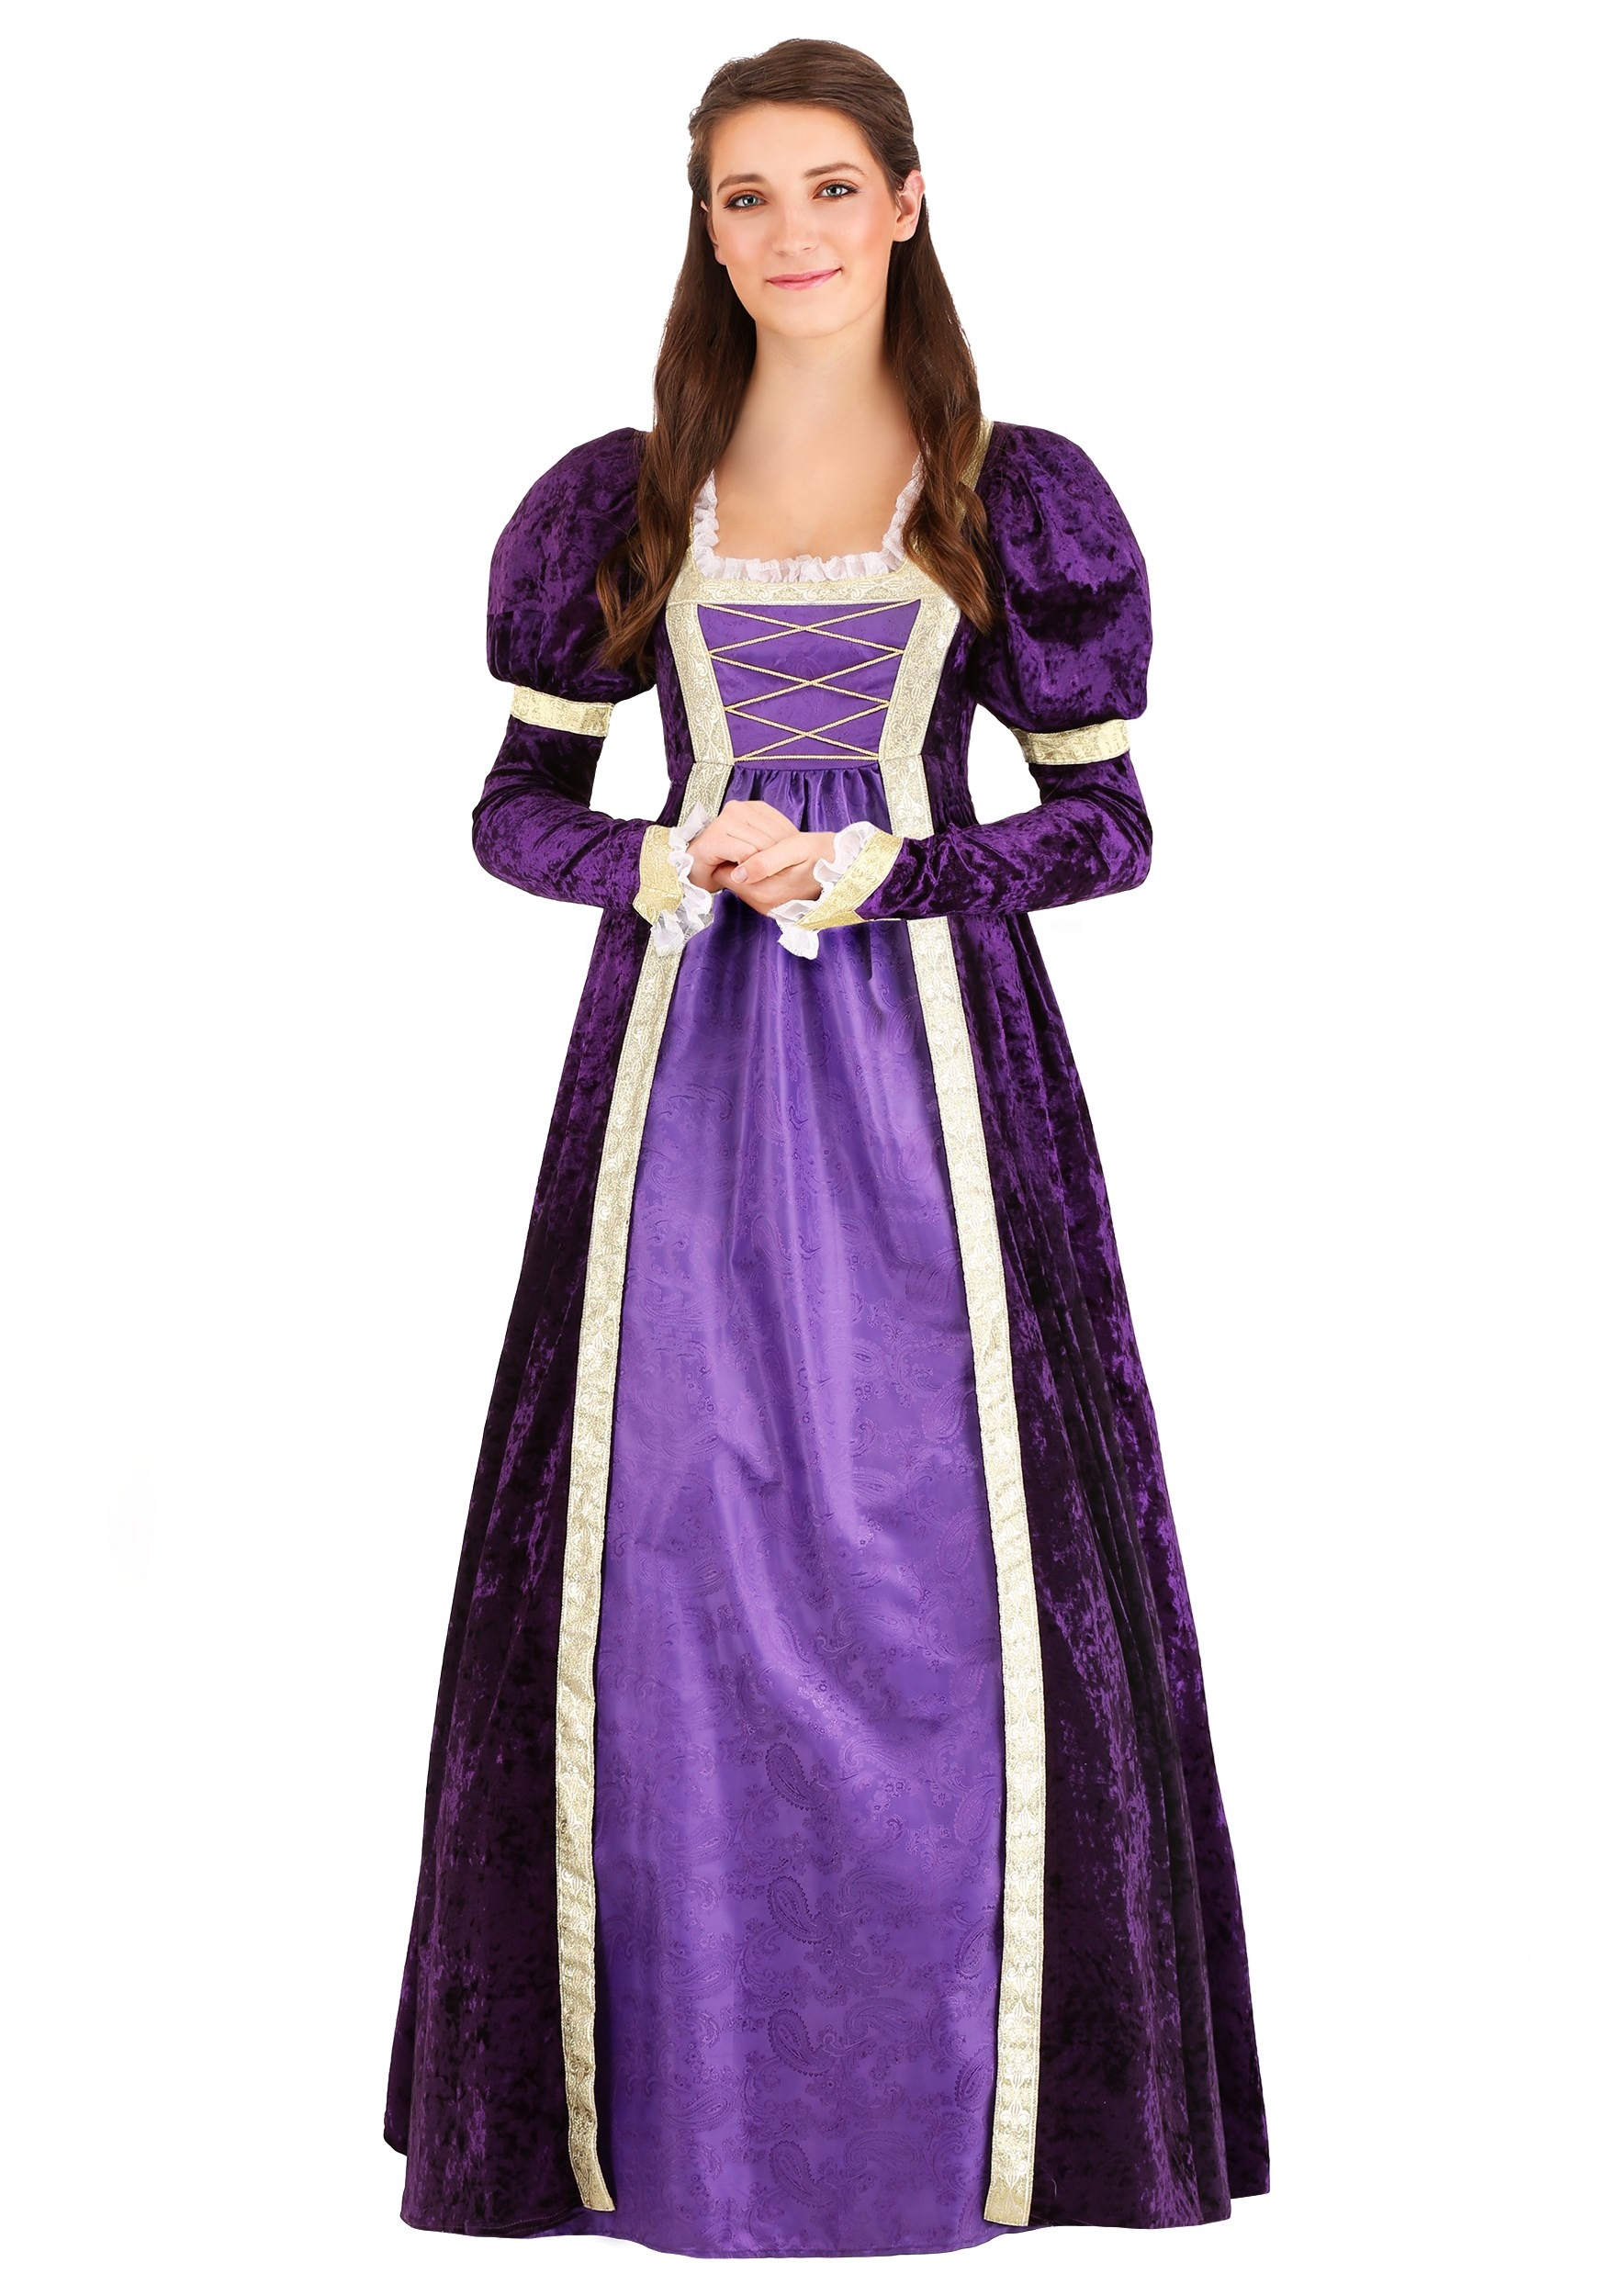 Regal Maiden Womens Costume